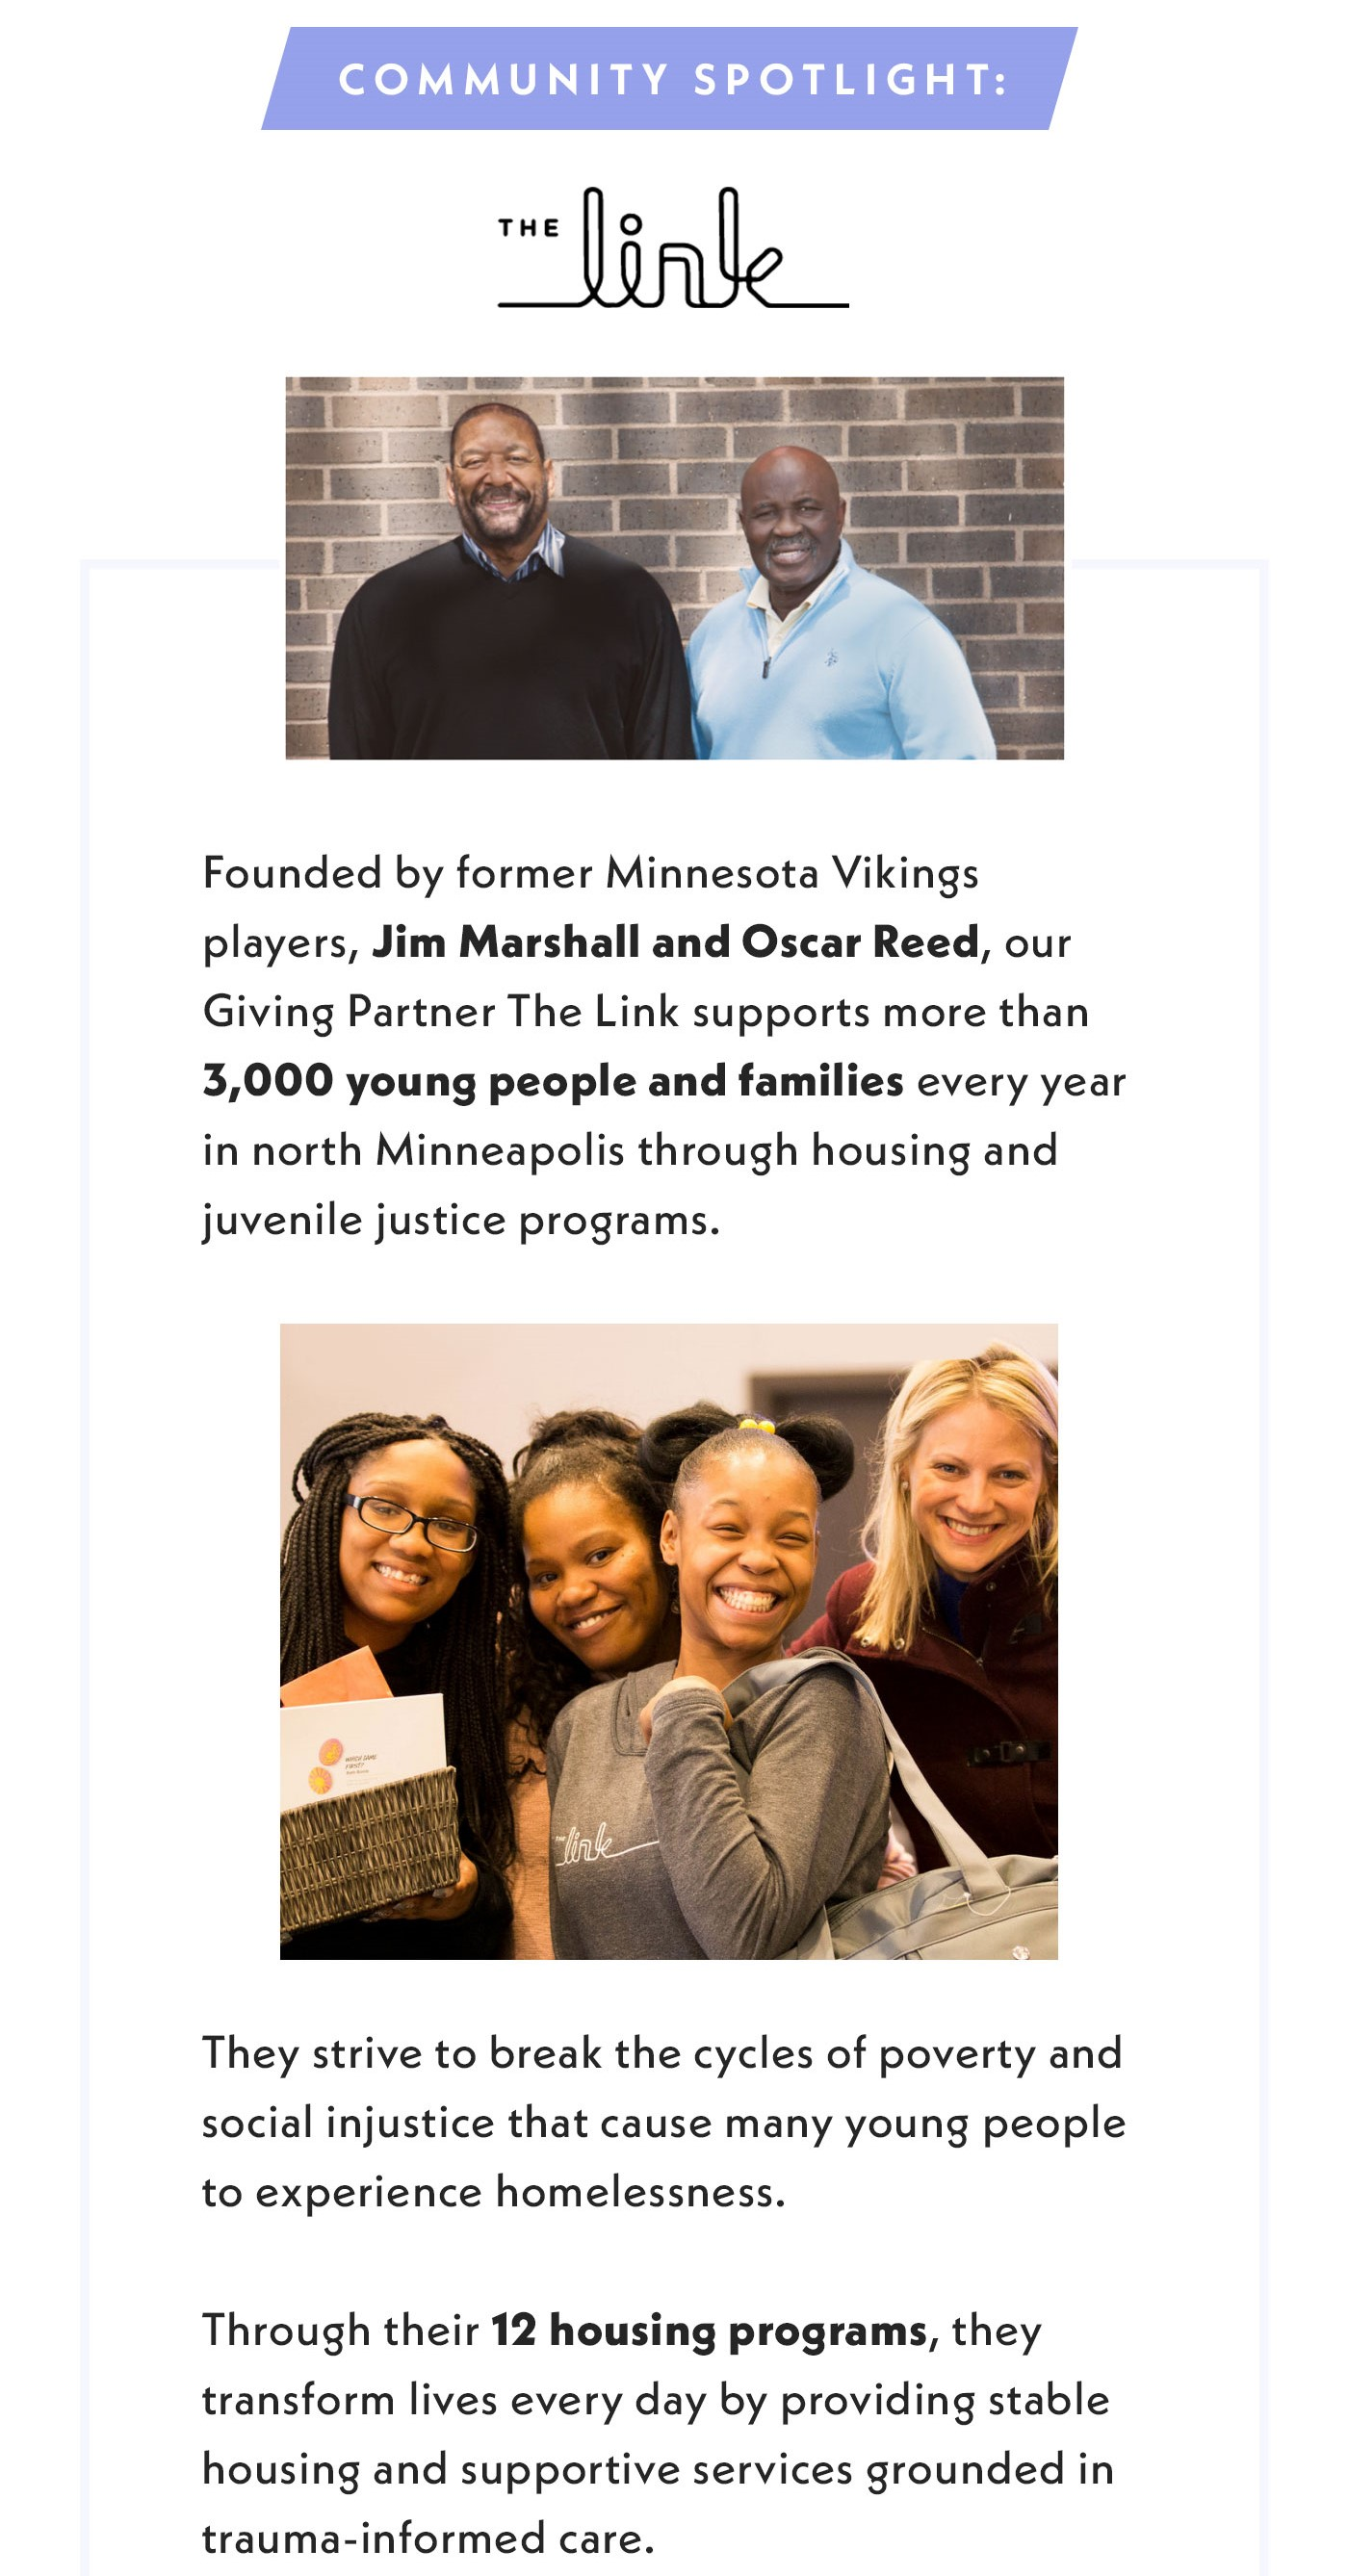 Community Spotlight: The Link. Found by former Minnesota Vikings players, Jim Marshall and Oscar Reed, our Giving Partner The Link supports more than 3,000 young people and families every year in north Minneapolis through housing and juvenile justice programs. They strive to break the cycles of poverty and social injustice that cause many young people to experience homelessness. Through their 12 housing programs, they transform lives every day by providing stable housing and supportive services grounded in trauma-informed care.